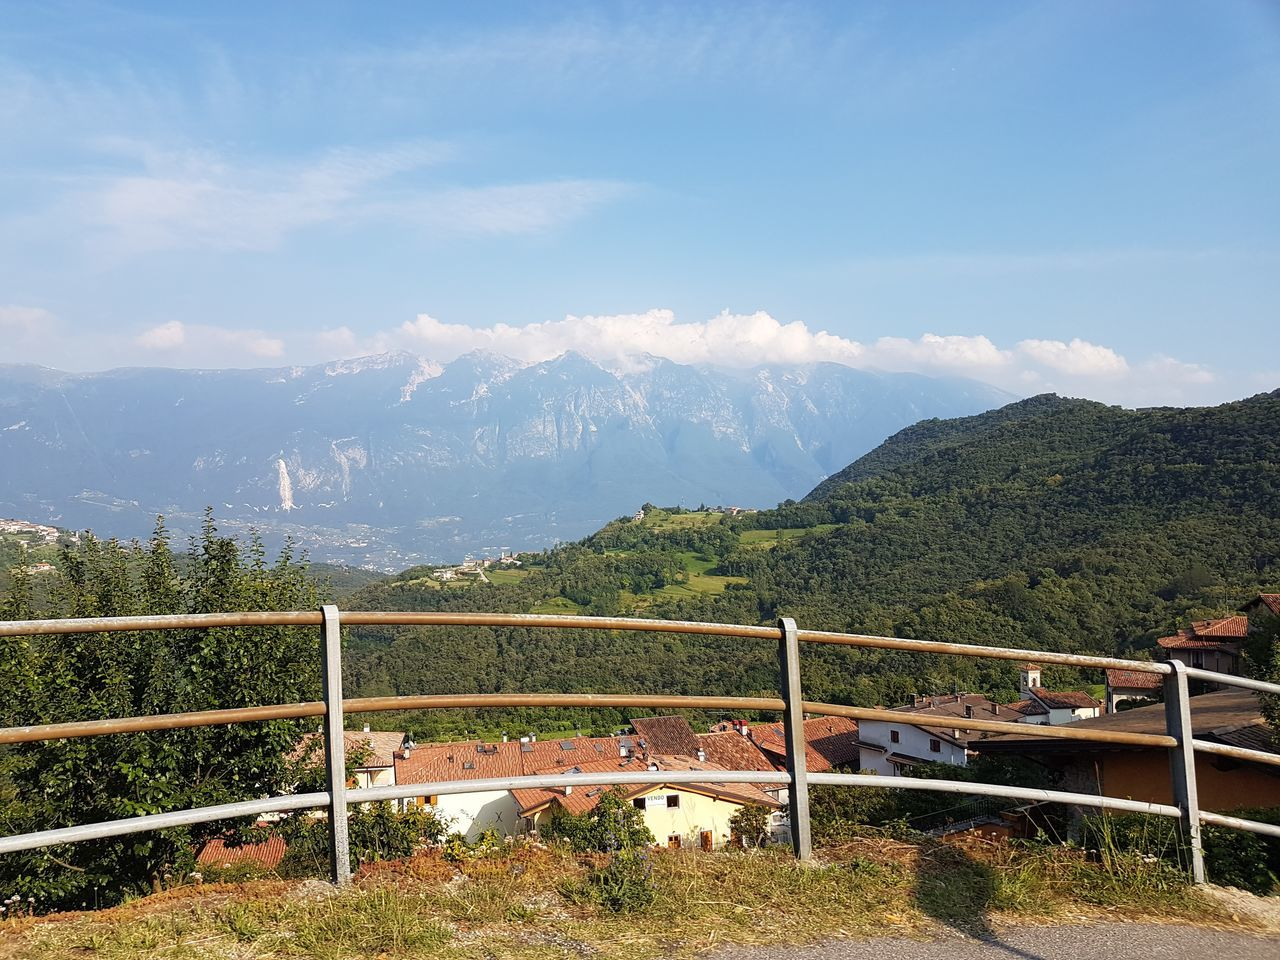 mountain, railing, mountain range, scenics, nature, high angle view, beauty in nature, day, sky, tranquility, tranquil scene, outdoors, no people, landscape, built structure, water, tree, architecture